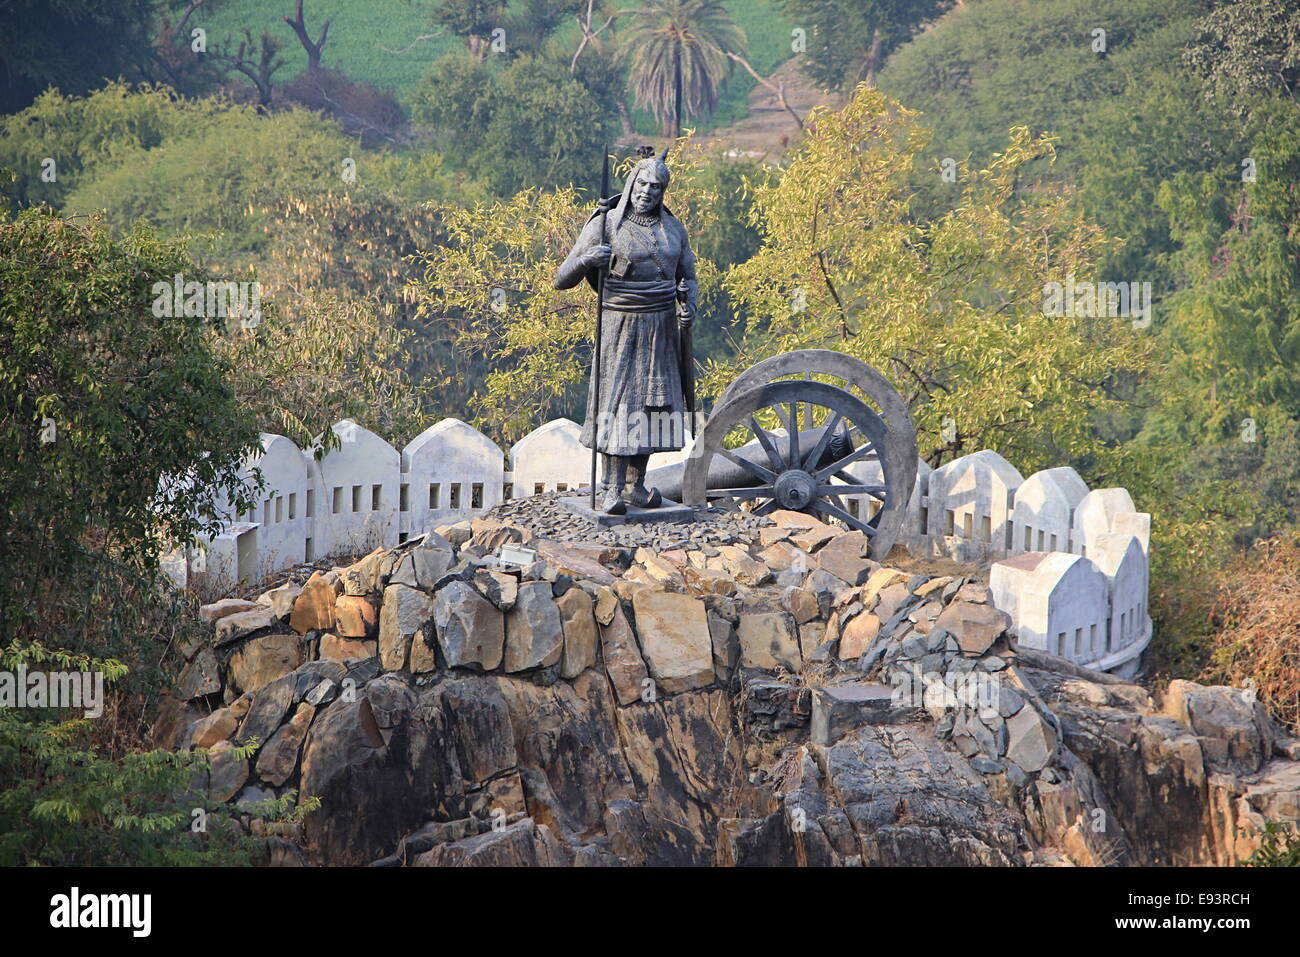 Statue of soldier holding spear standing near cannon on hillock near Pratap Smarak, Udaipur, Rajasthan, India, Asia - Stock Image